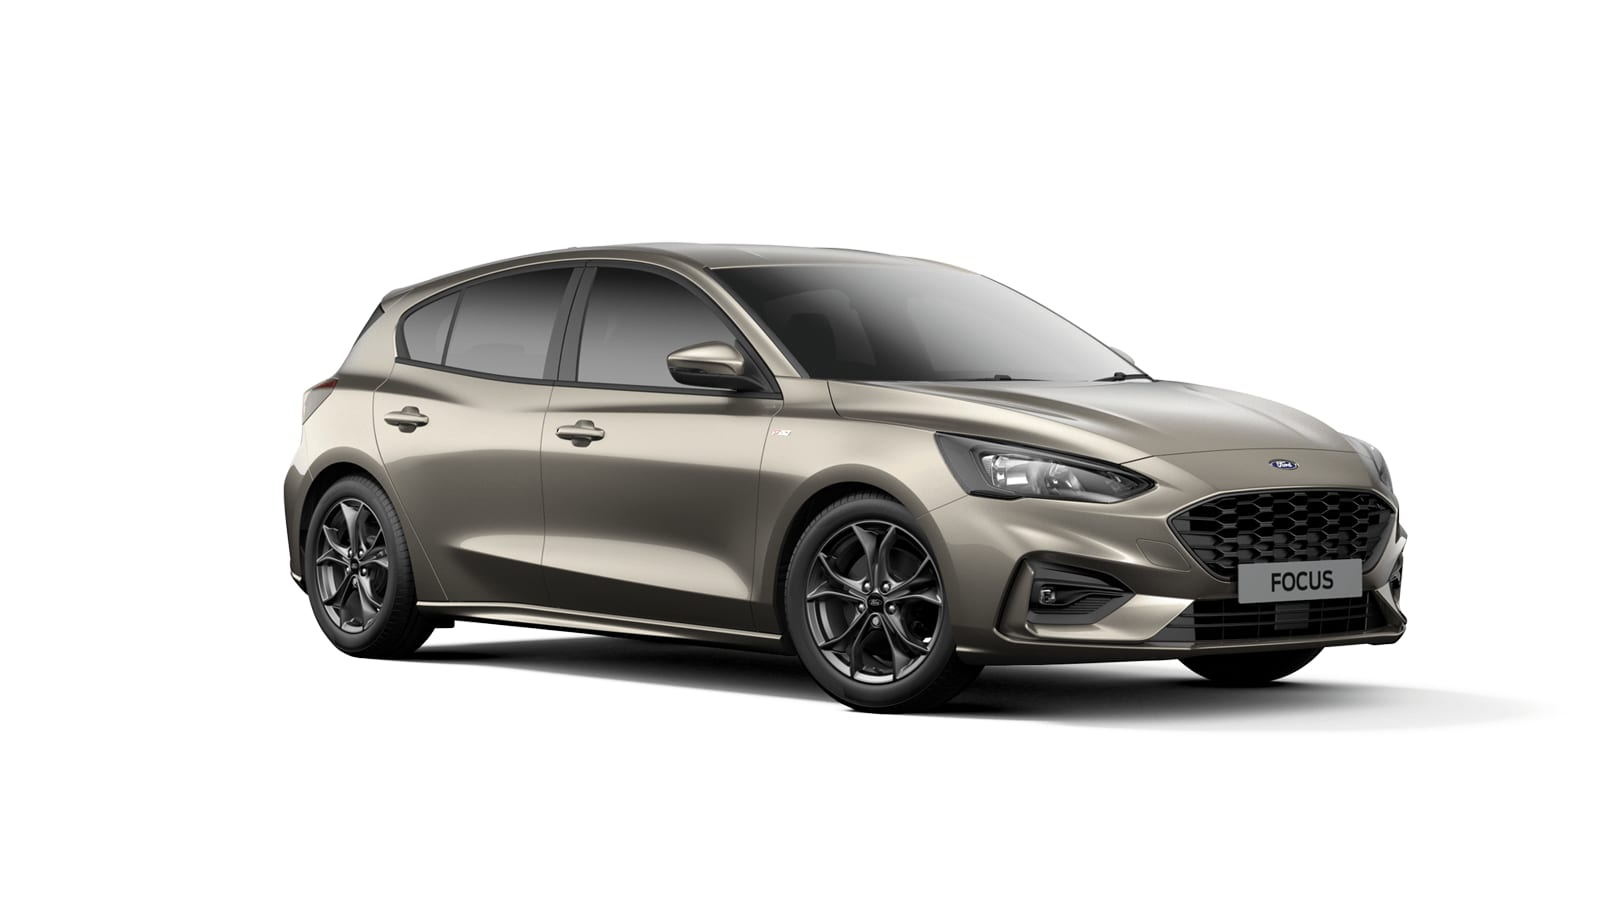 NEW FOCUS ST-Line 5 Door in Diffused Silver